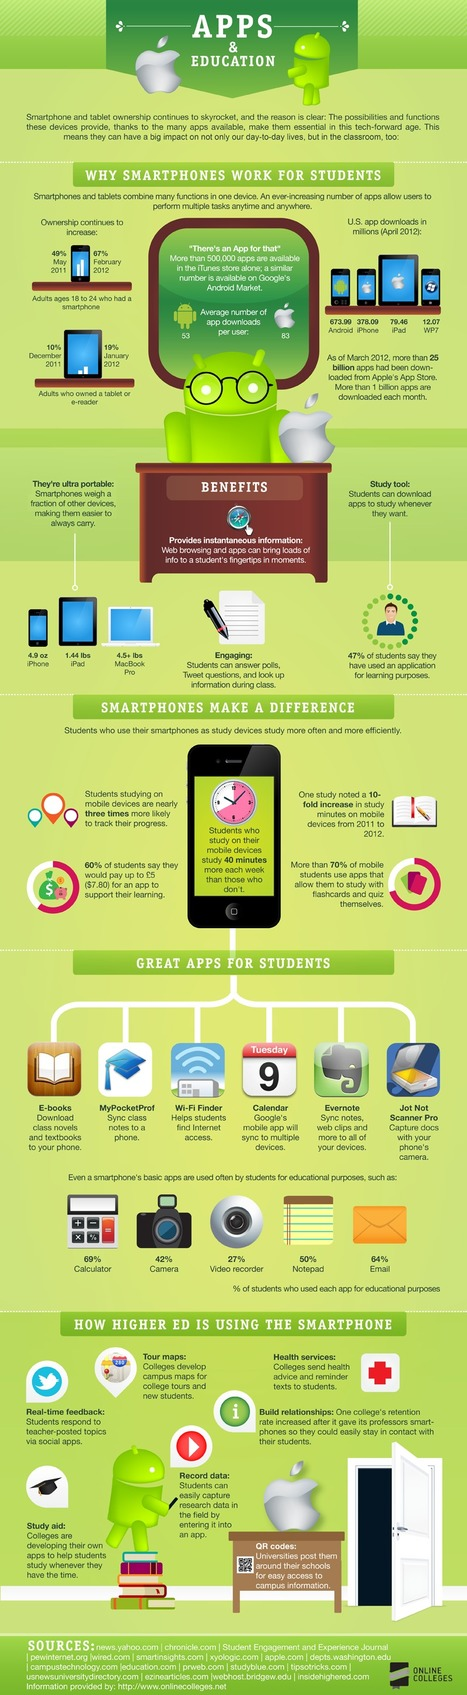 Trends | Infographic: Apps and Education | Teaching in the XXI century | Scoop.it